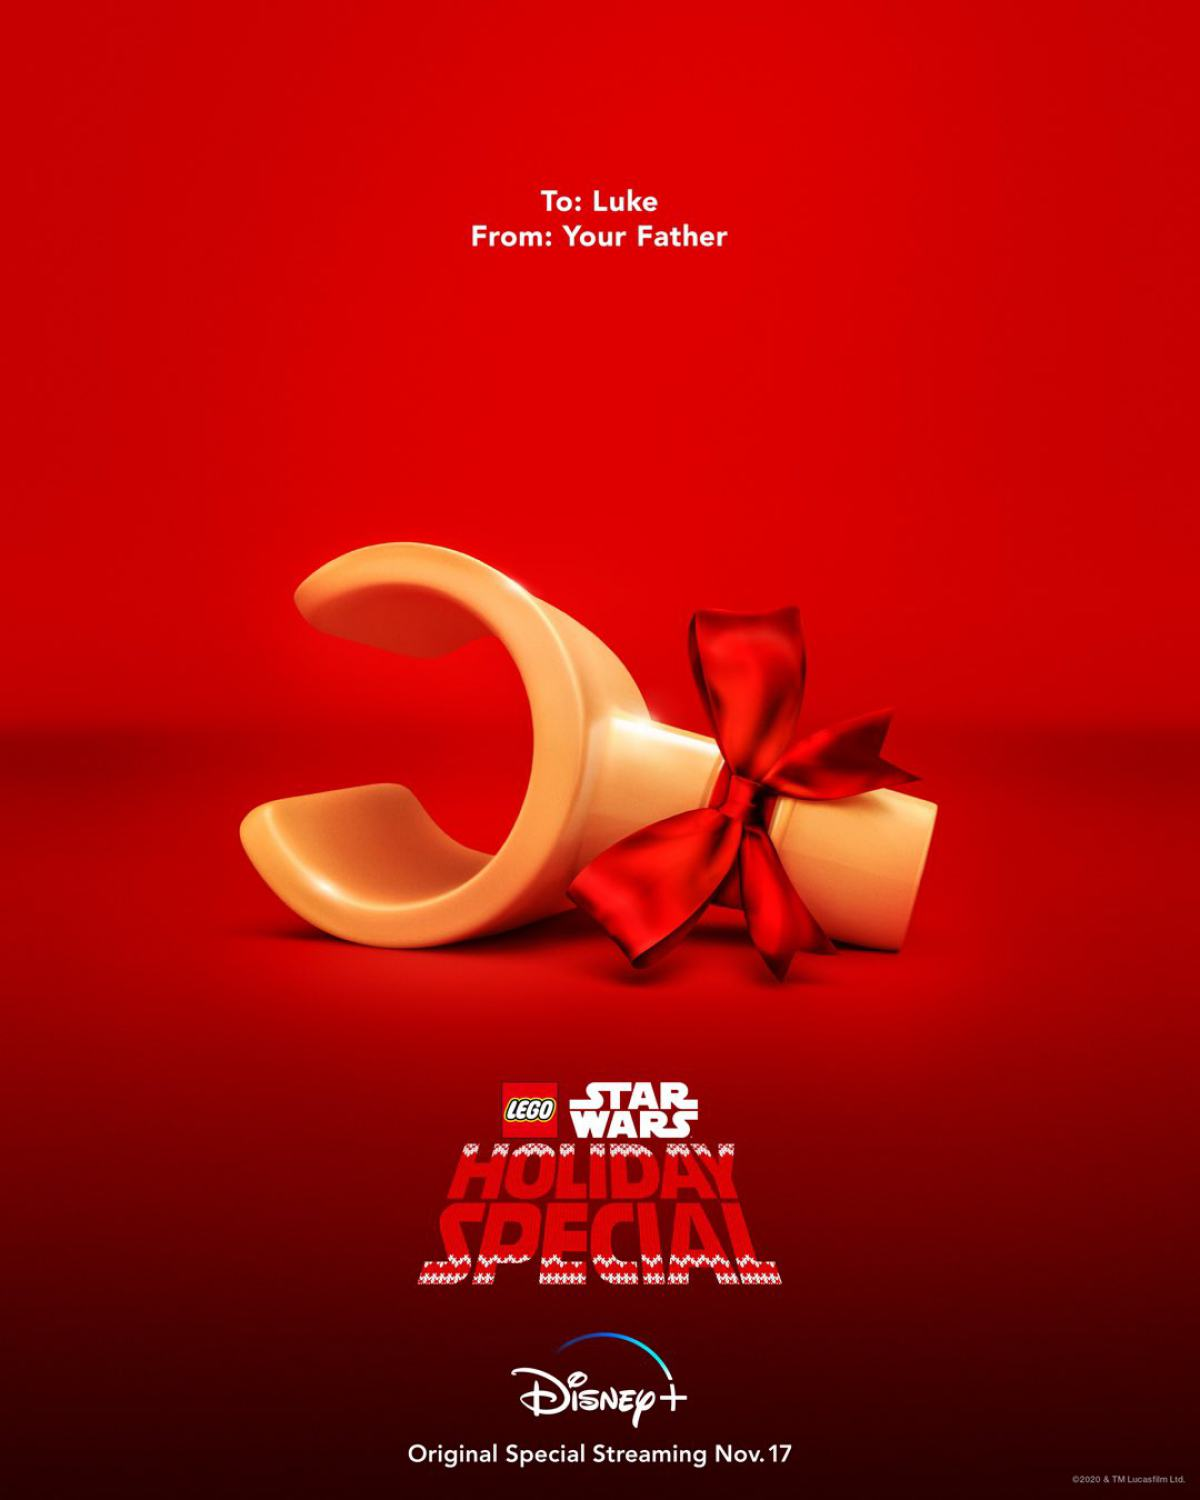 The Lego Star Wars Holiday Special Poster #1